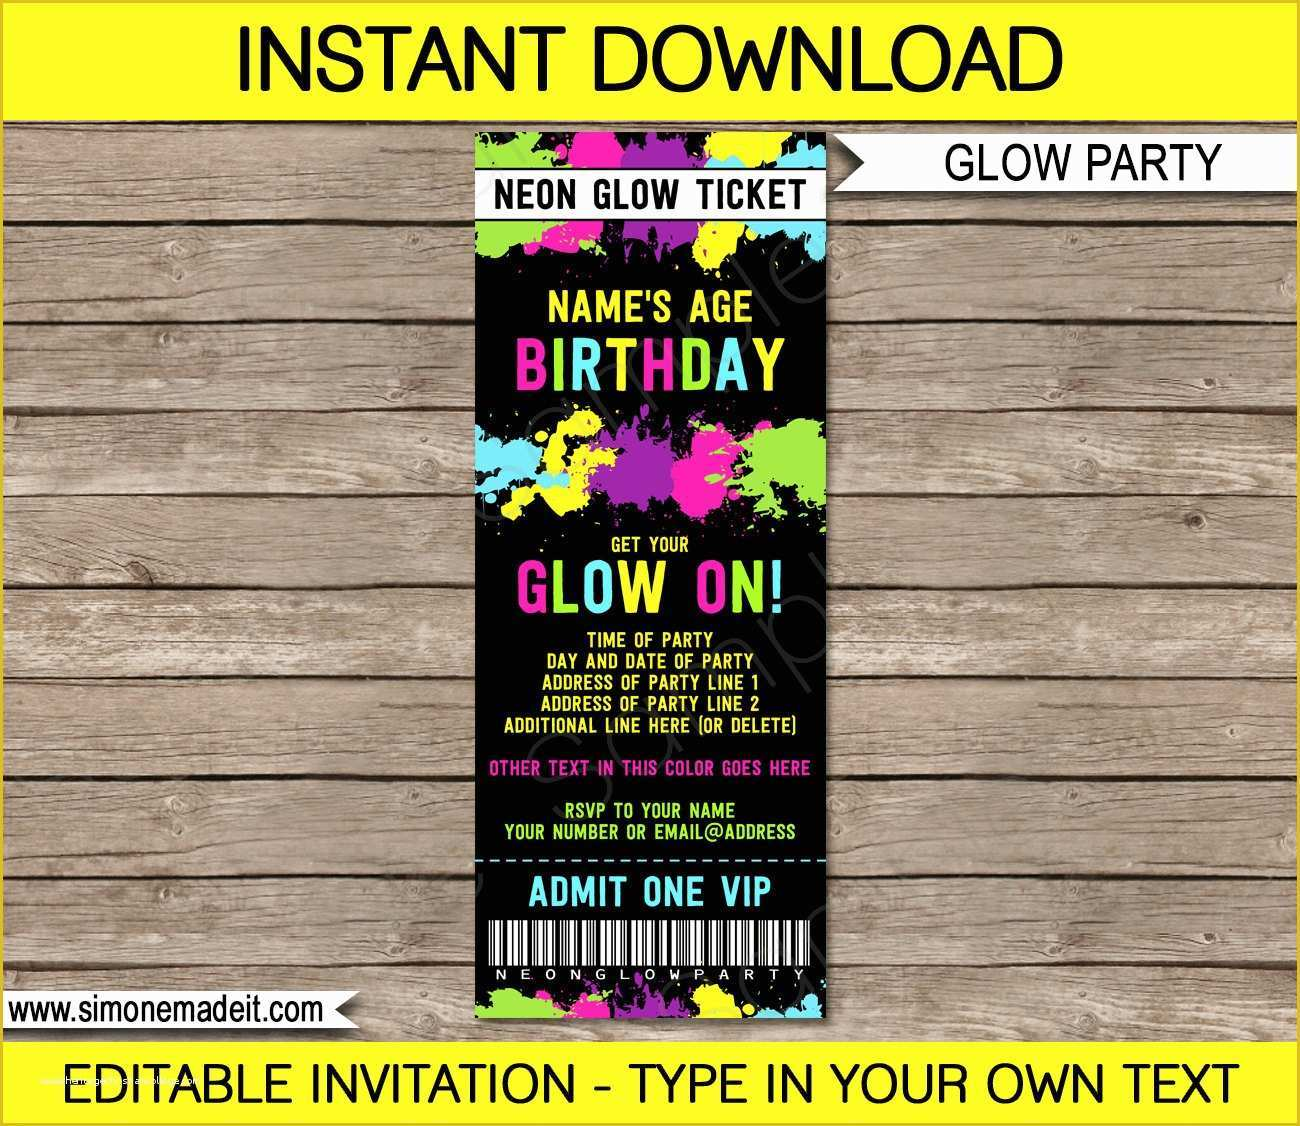 Neon Party Invitations Templates Free Of Neon Glow Party Ticket Invitation Neon Glow Theme Birthday